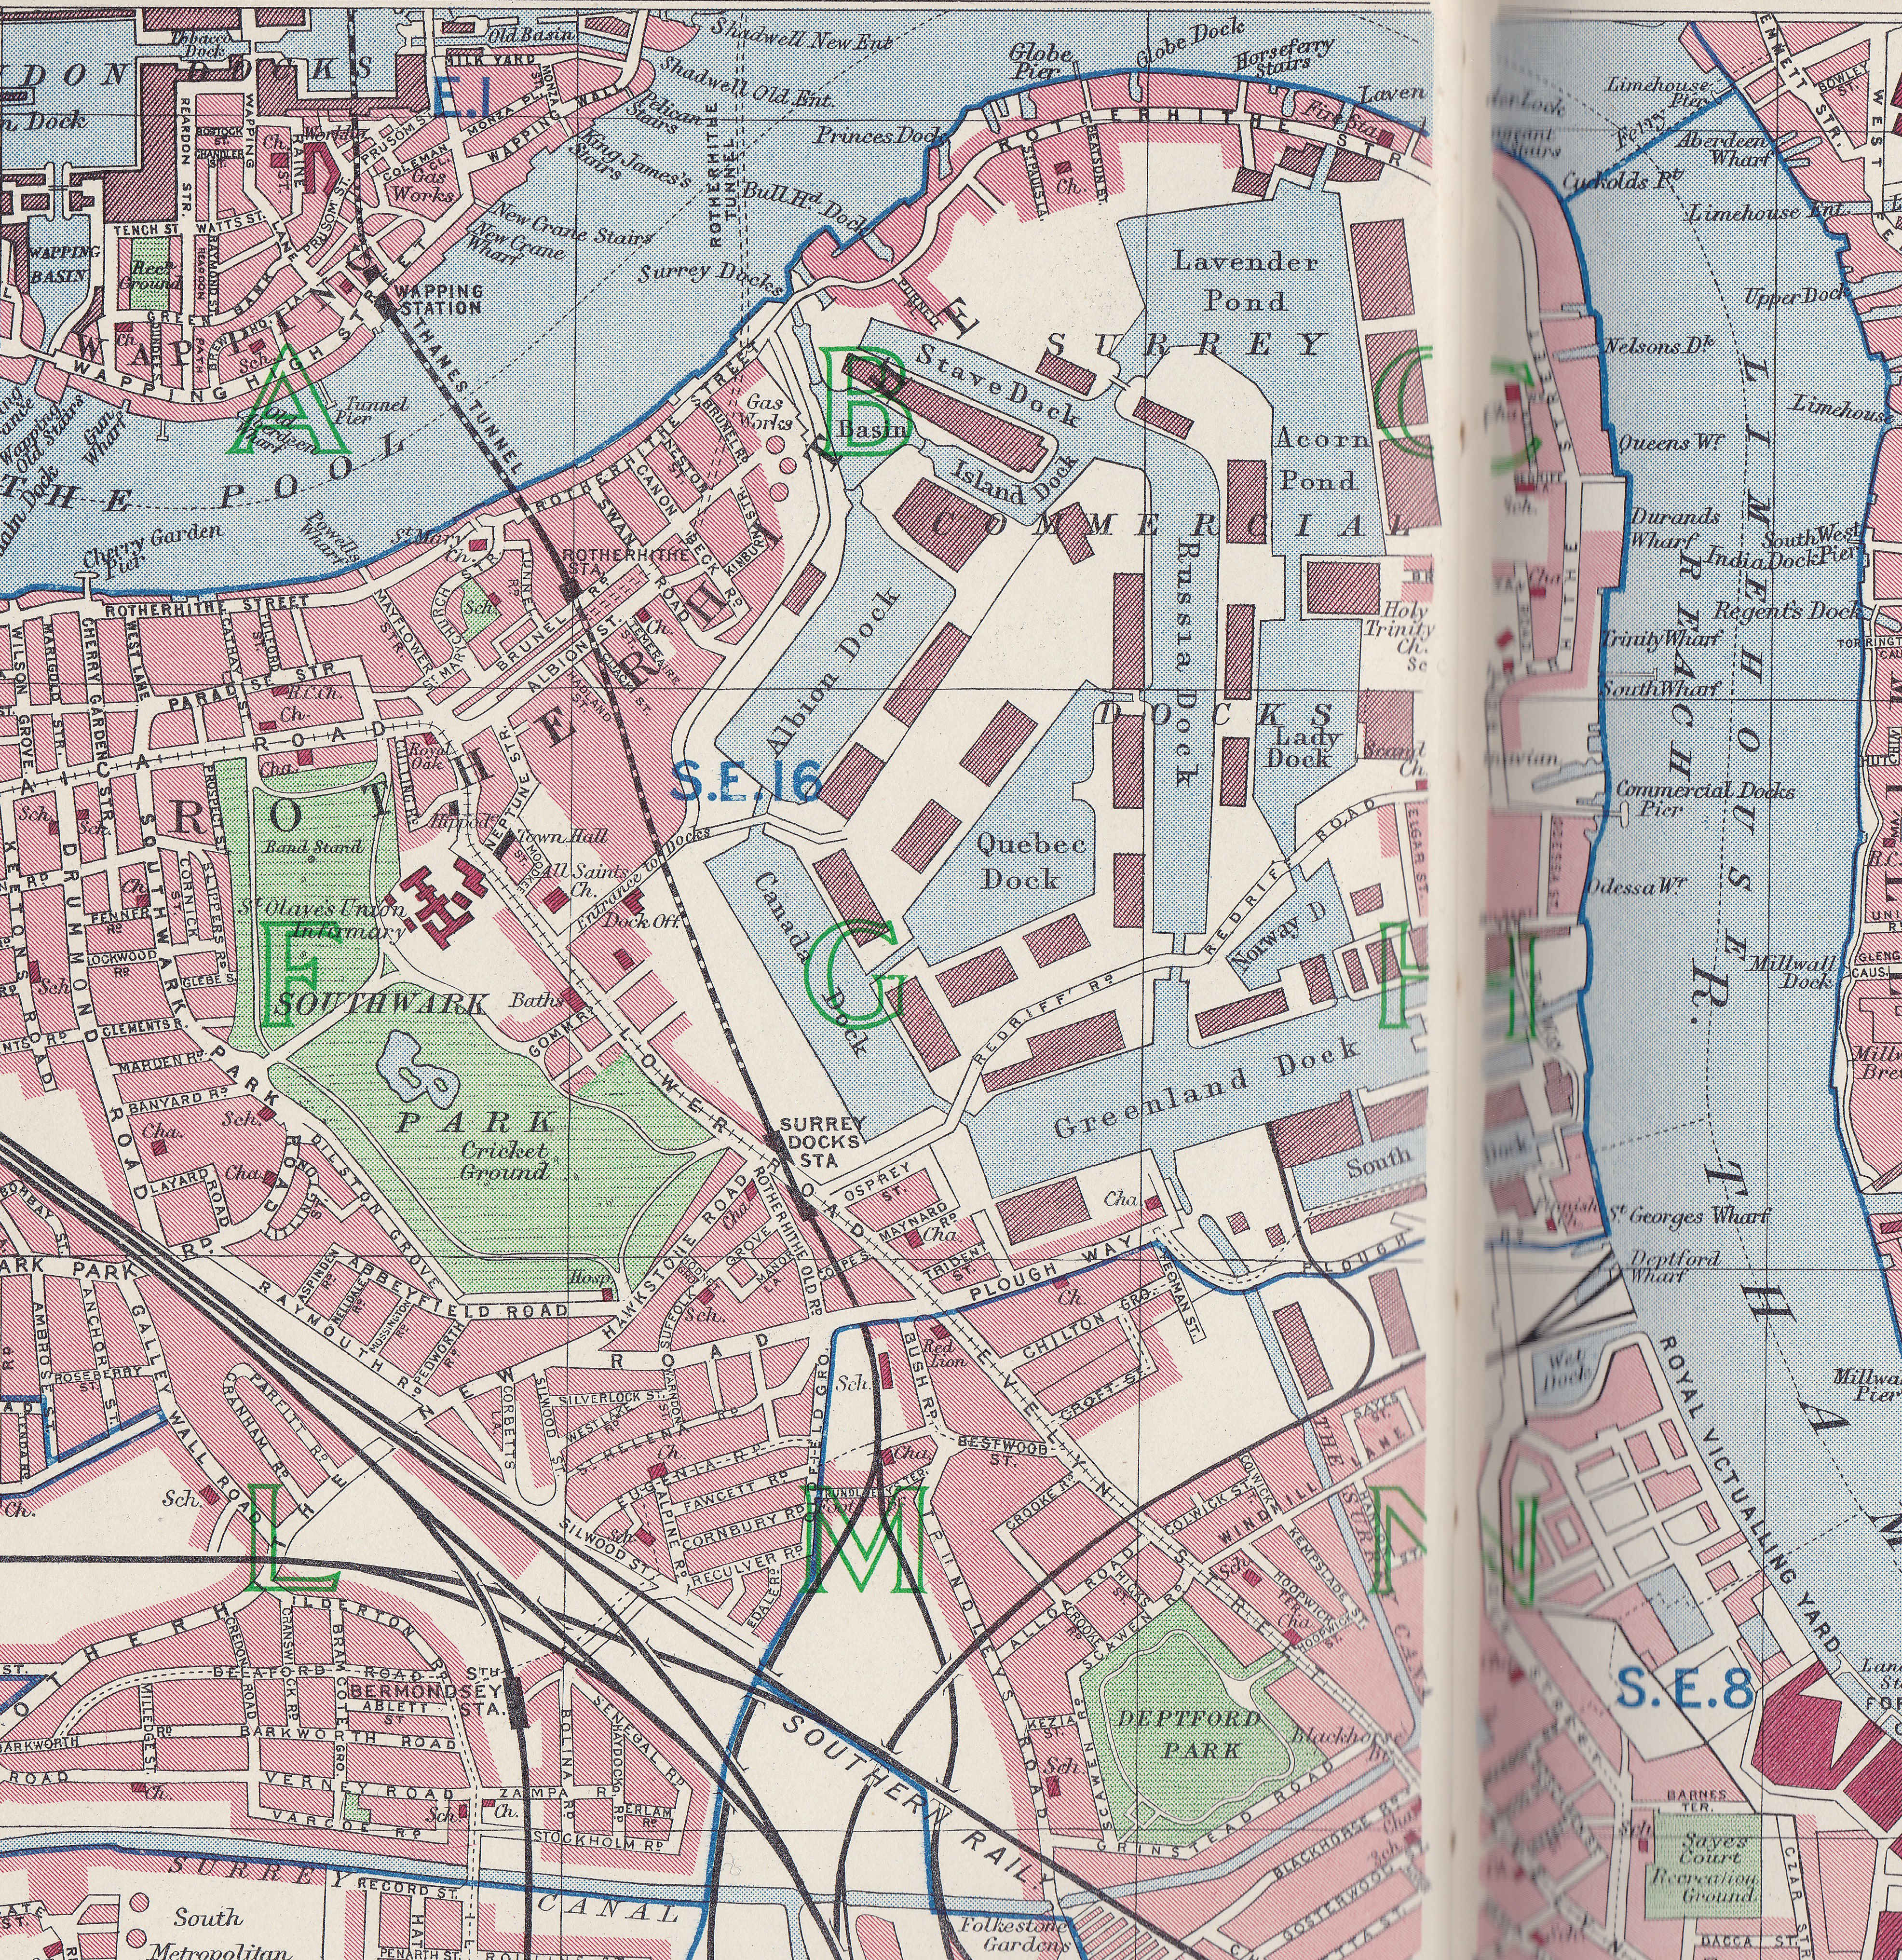 Show Map Of London.Map Of London Archives A London Inheritance